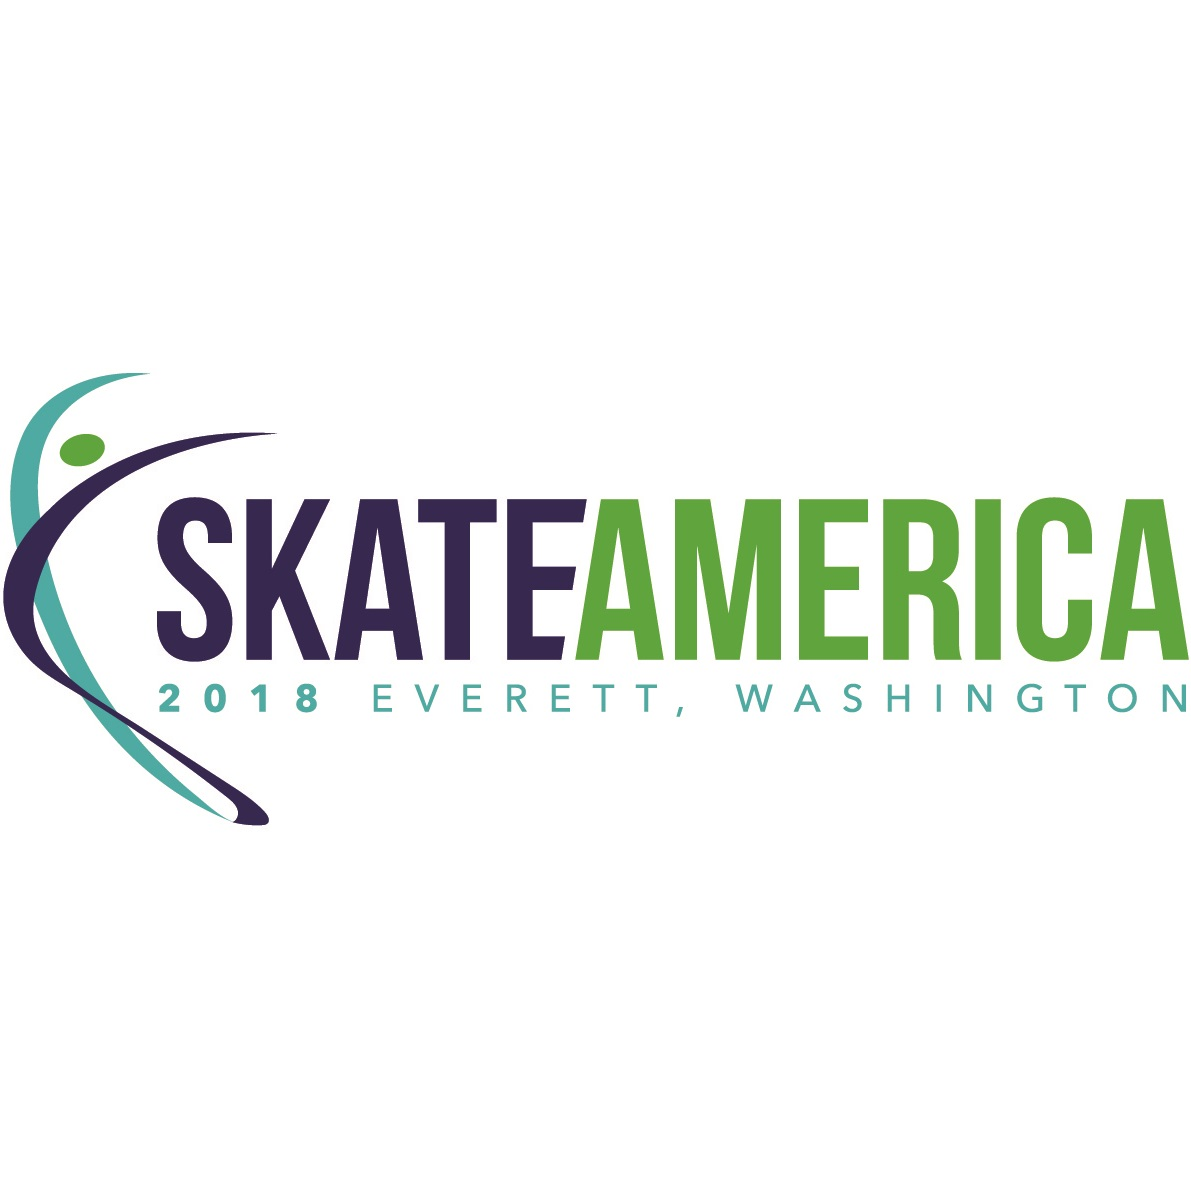 2018 ISU Grand Prix of Figure Skating - Skate America